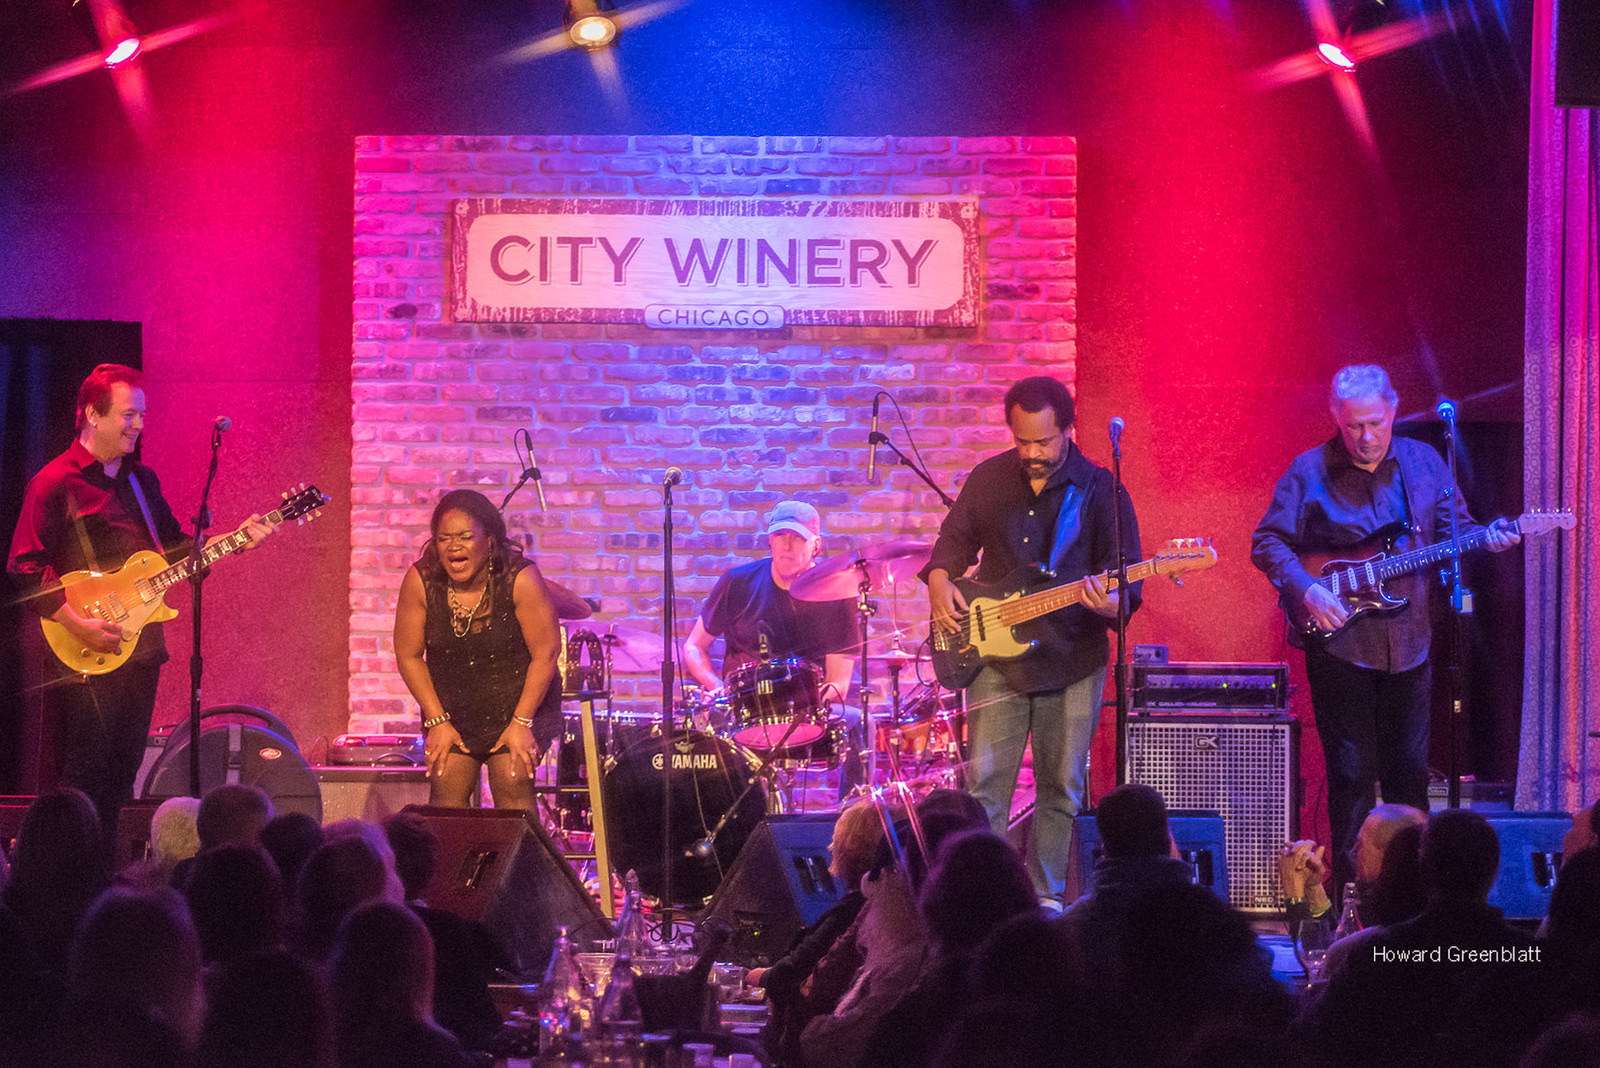 PHOTOS | Shemekia Copeland's Holiday Show @ City Winery 12/18/16